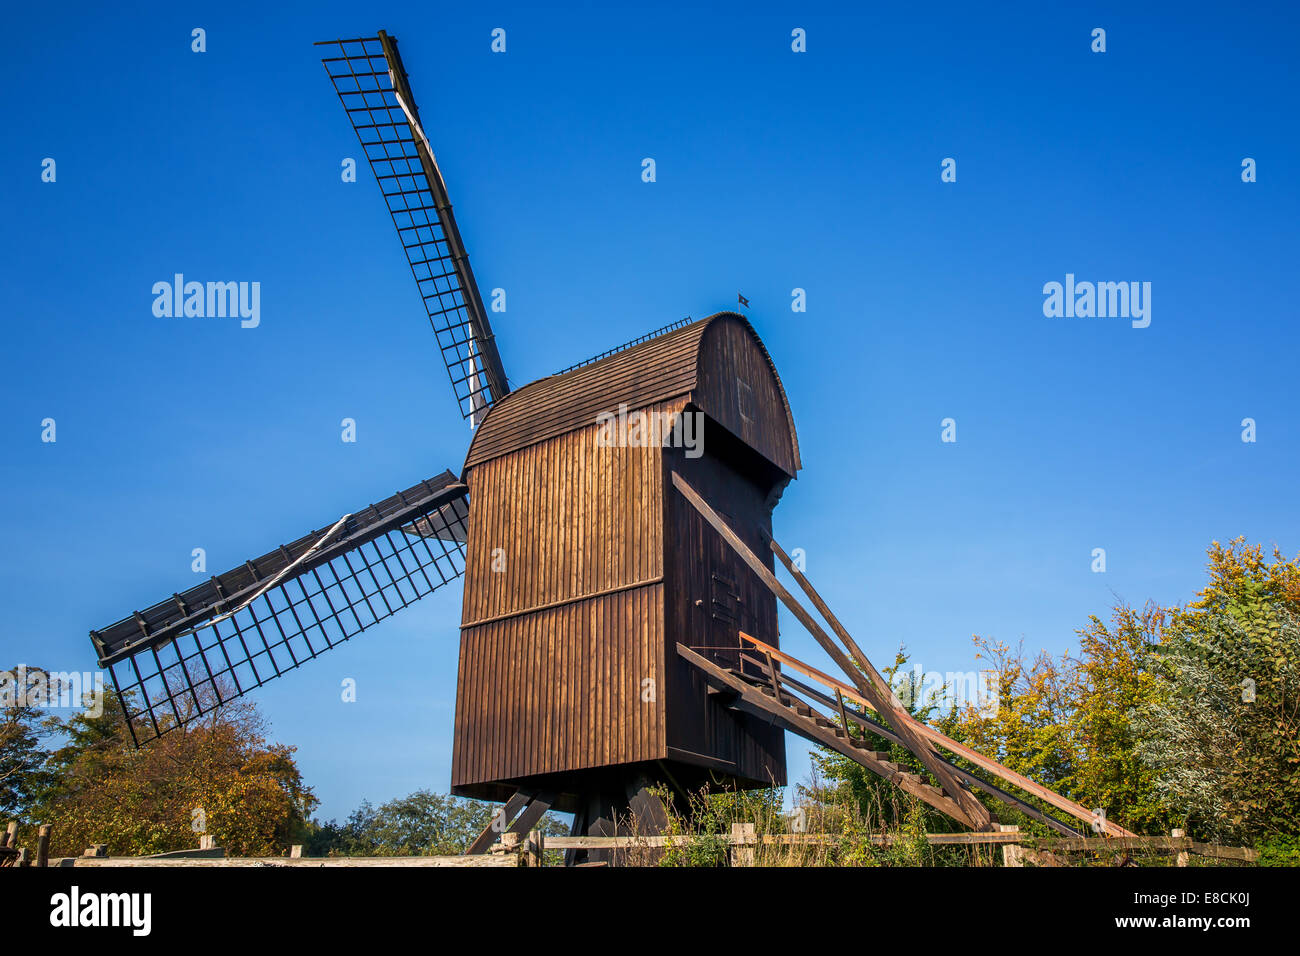 Typical Danish windmill from the 16th century, The Open Air Museum, Frilandsmuseet, Lyngby, Copenhagen area, Denmark - Stock Image